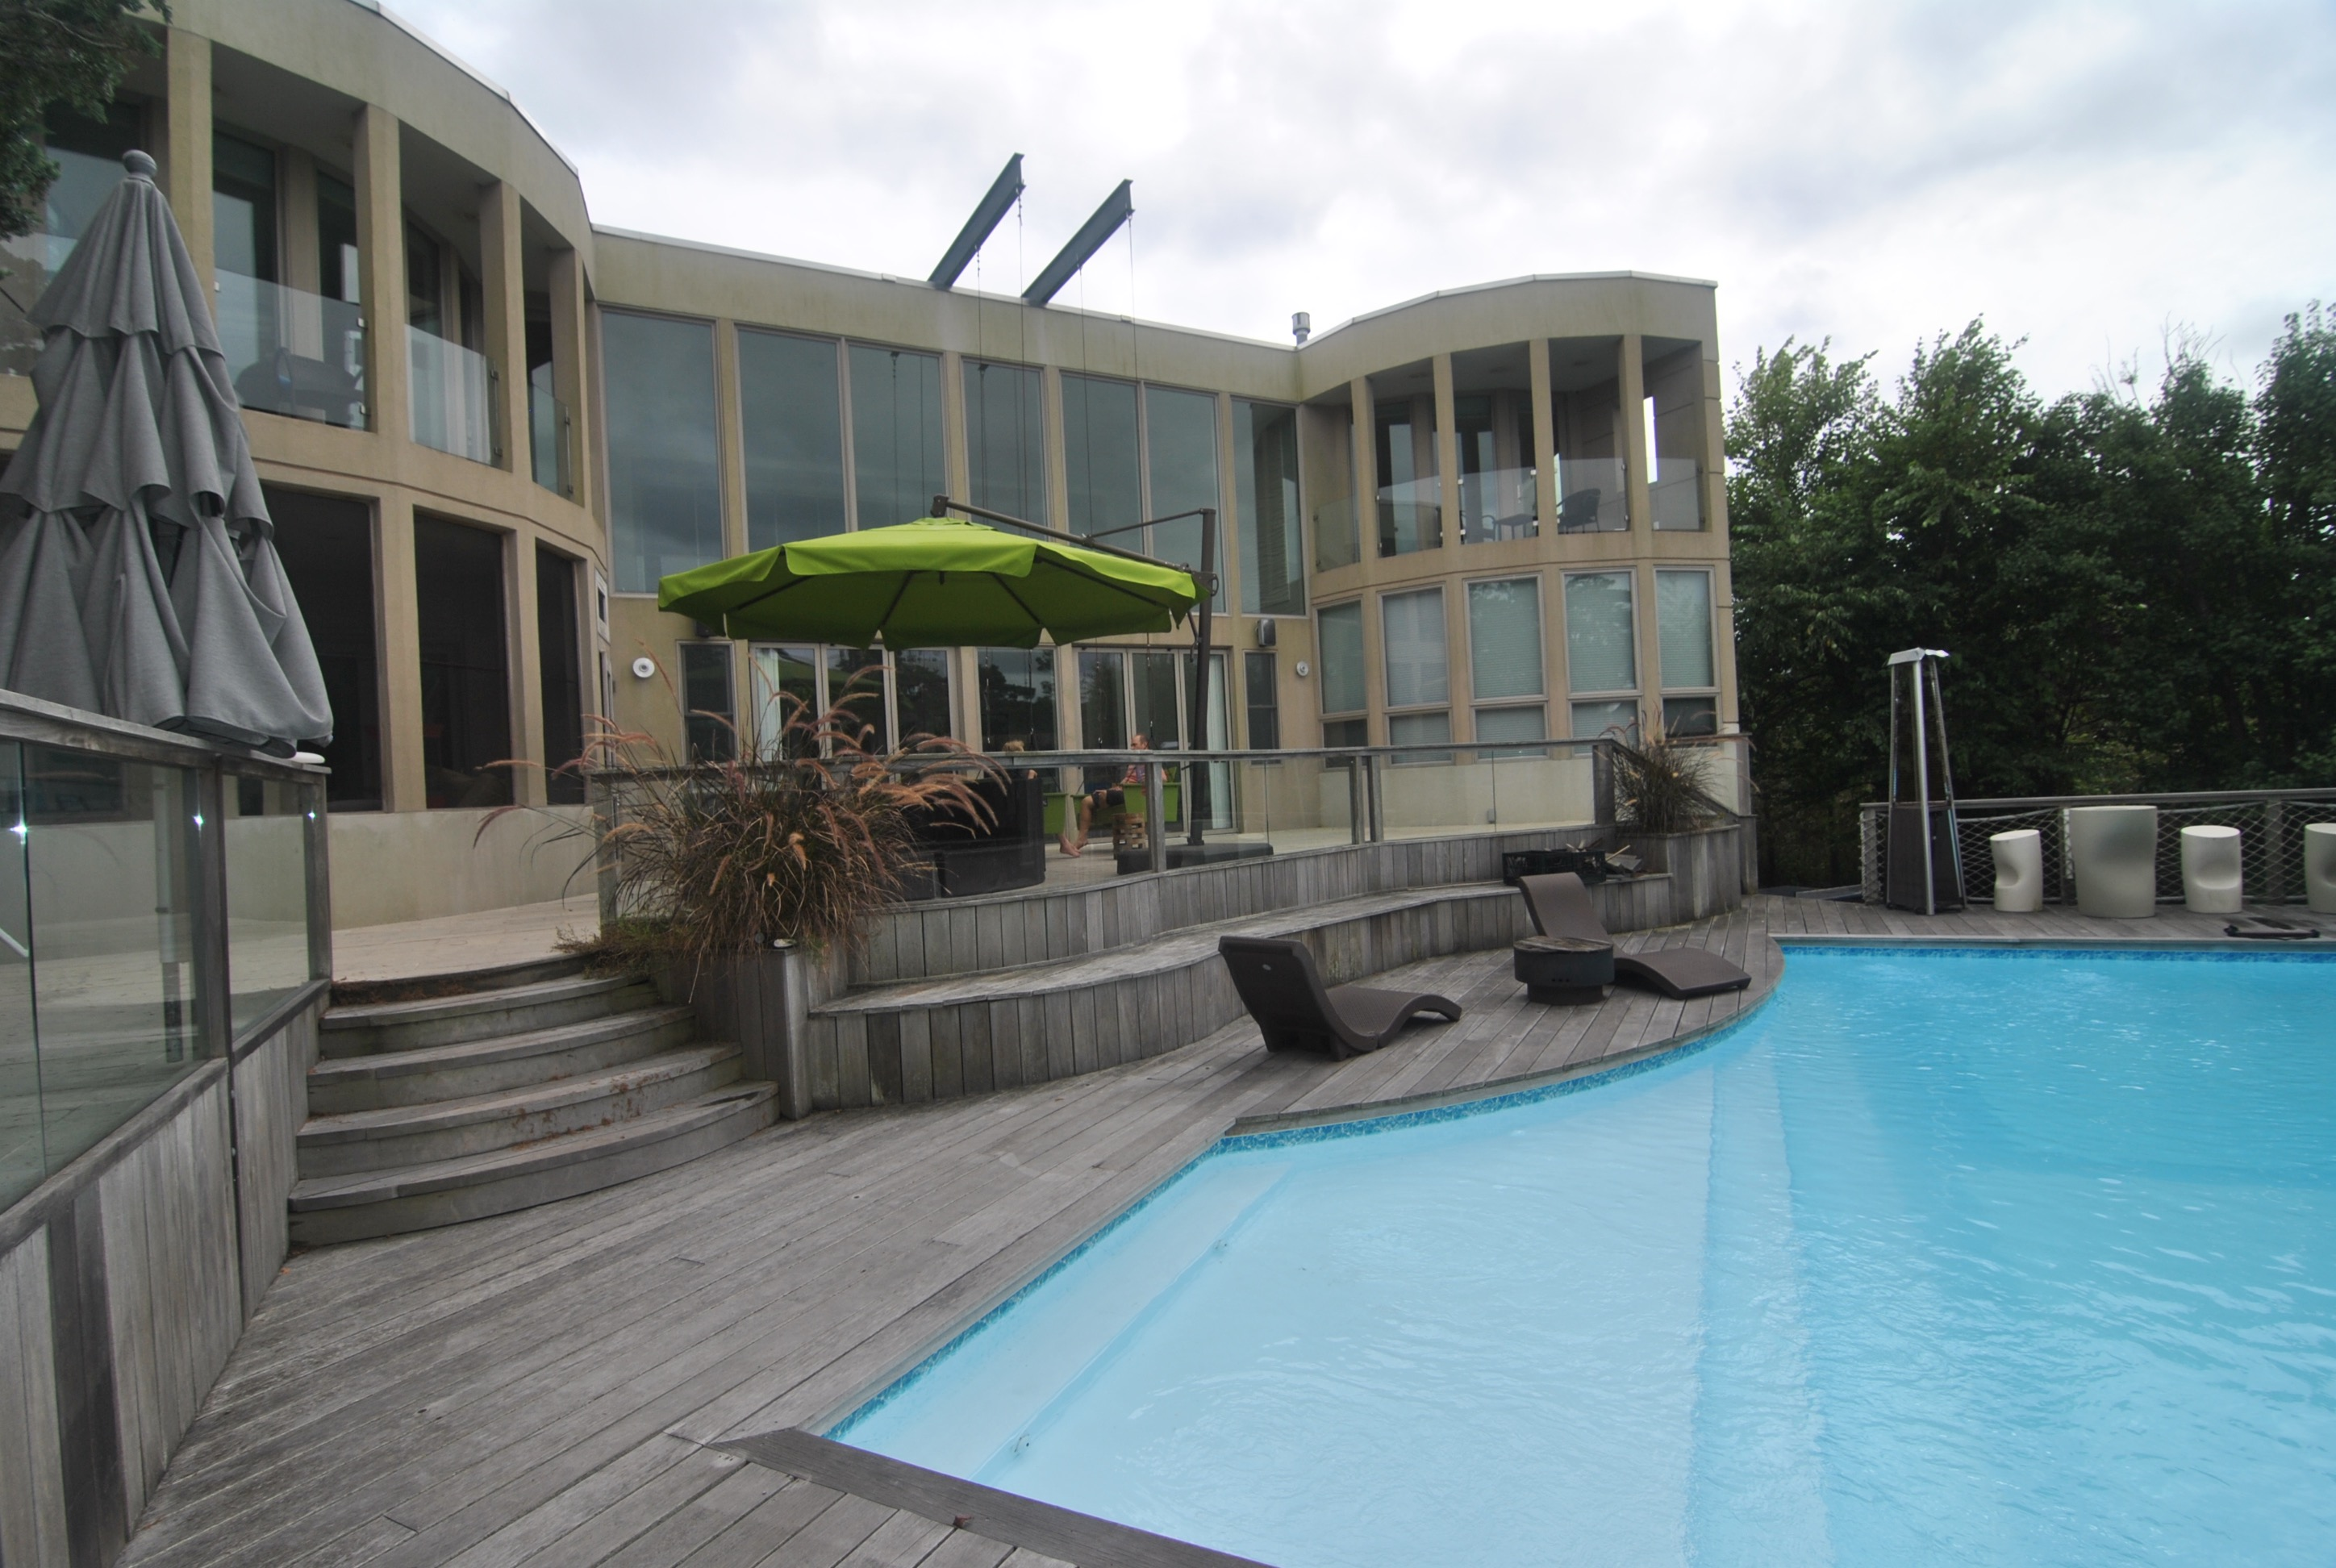 This large, contemporary Seaview home with a gorgeous pool is the perfect getaway for your summer. This house features 5 bedrooms and 3.5 bathrooms with 2 Master ensuites. There is also a guest cottage with its own private bathroom.   This house is available July 23-30, 2017